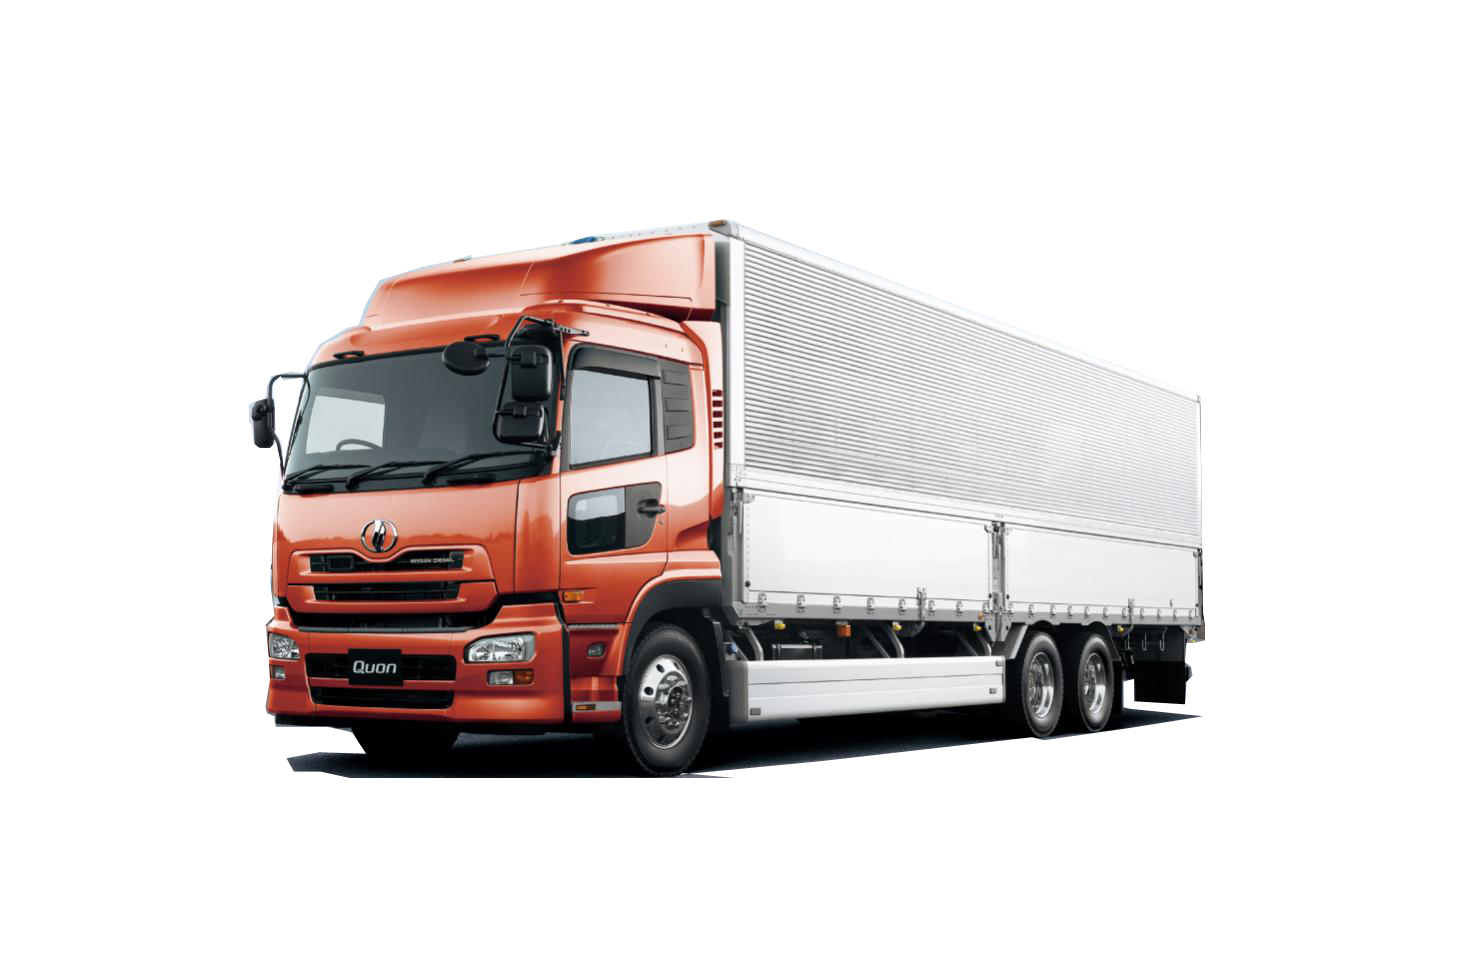 Cargo Truck PNG - 8211